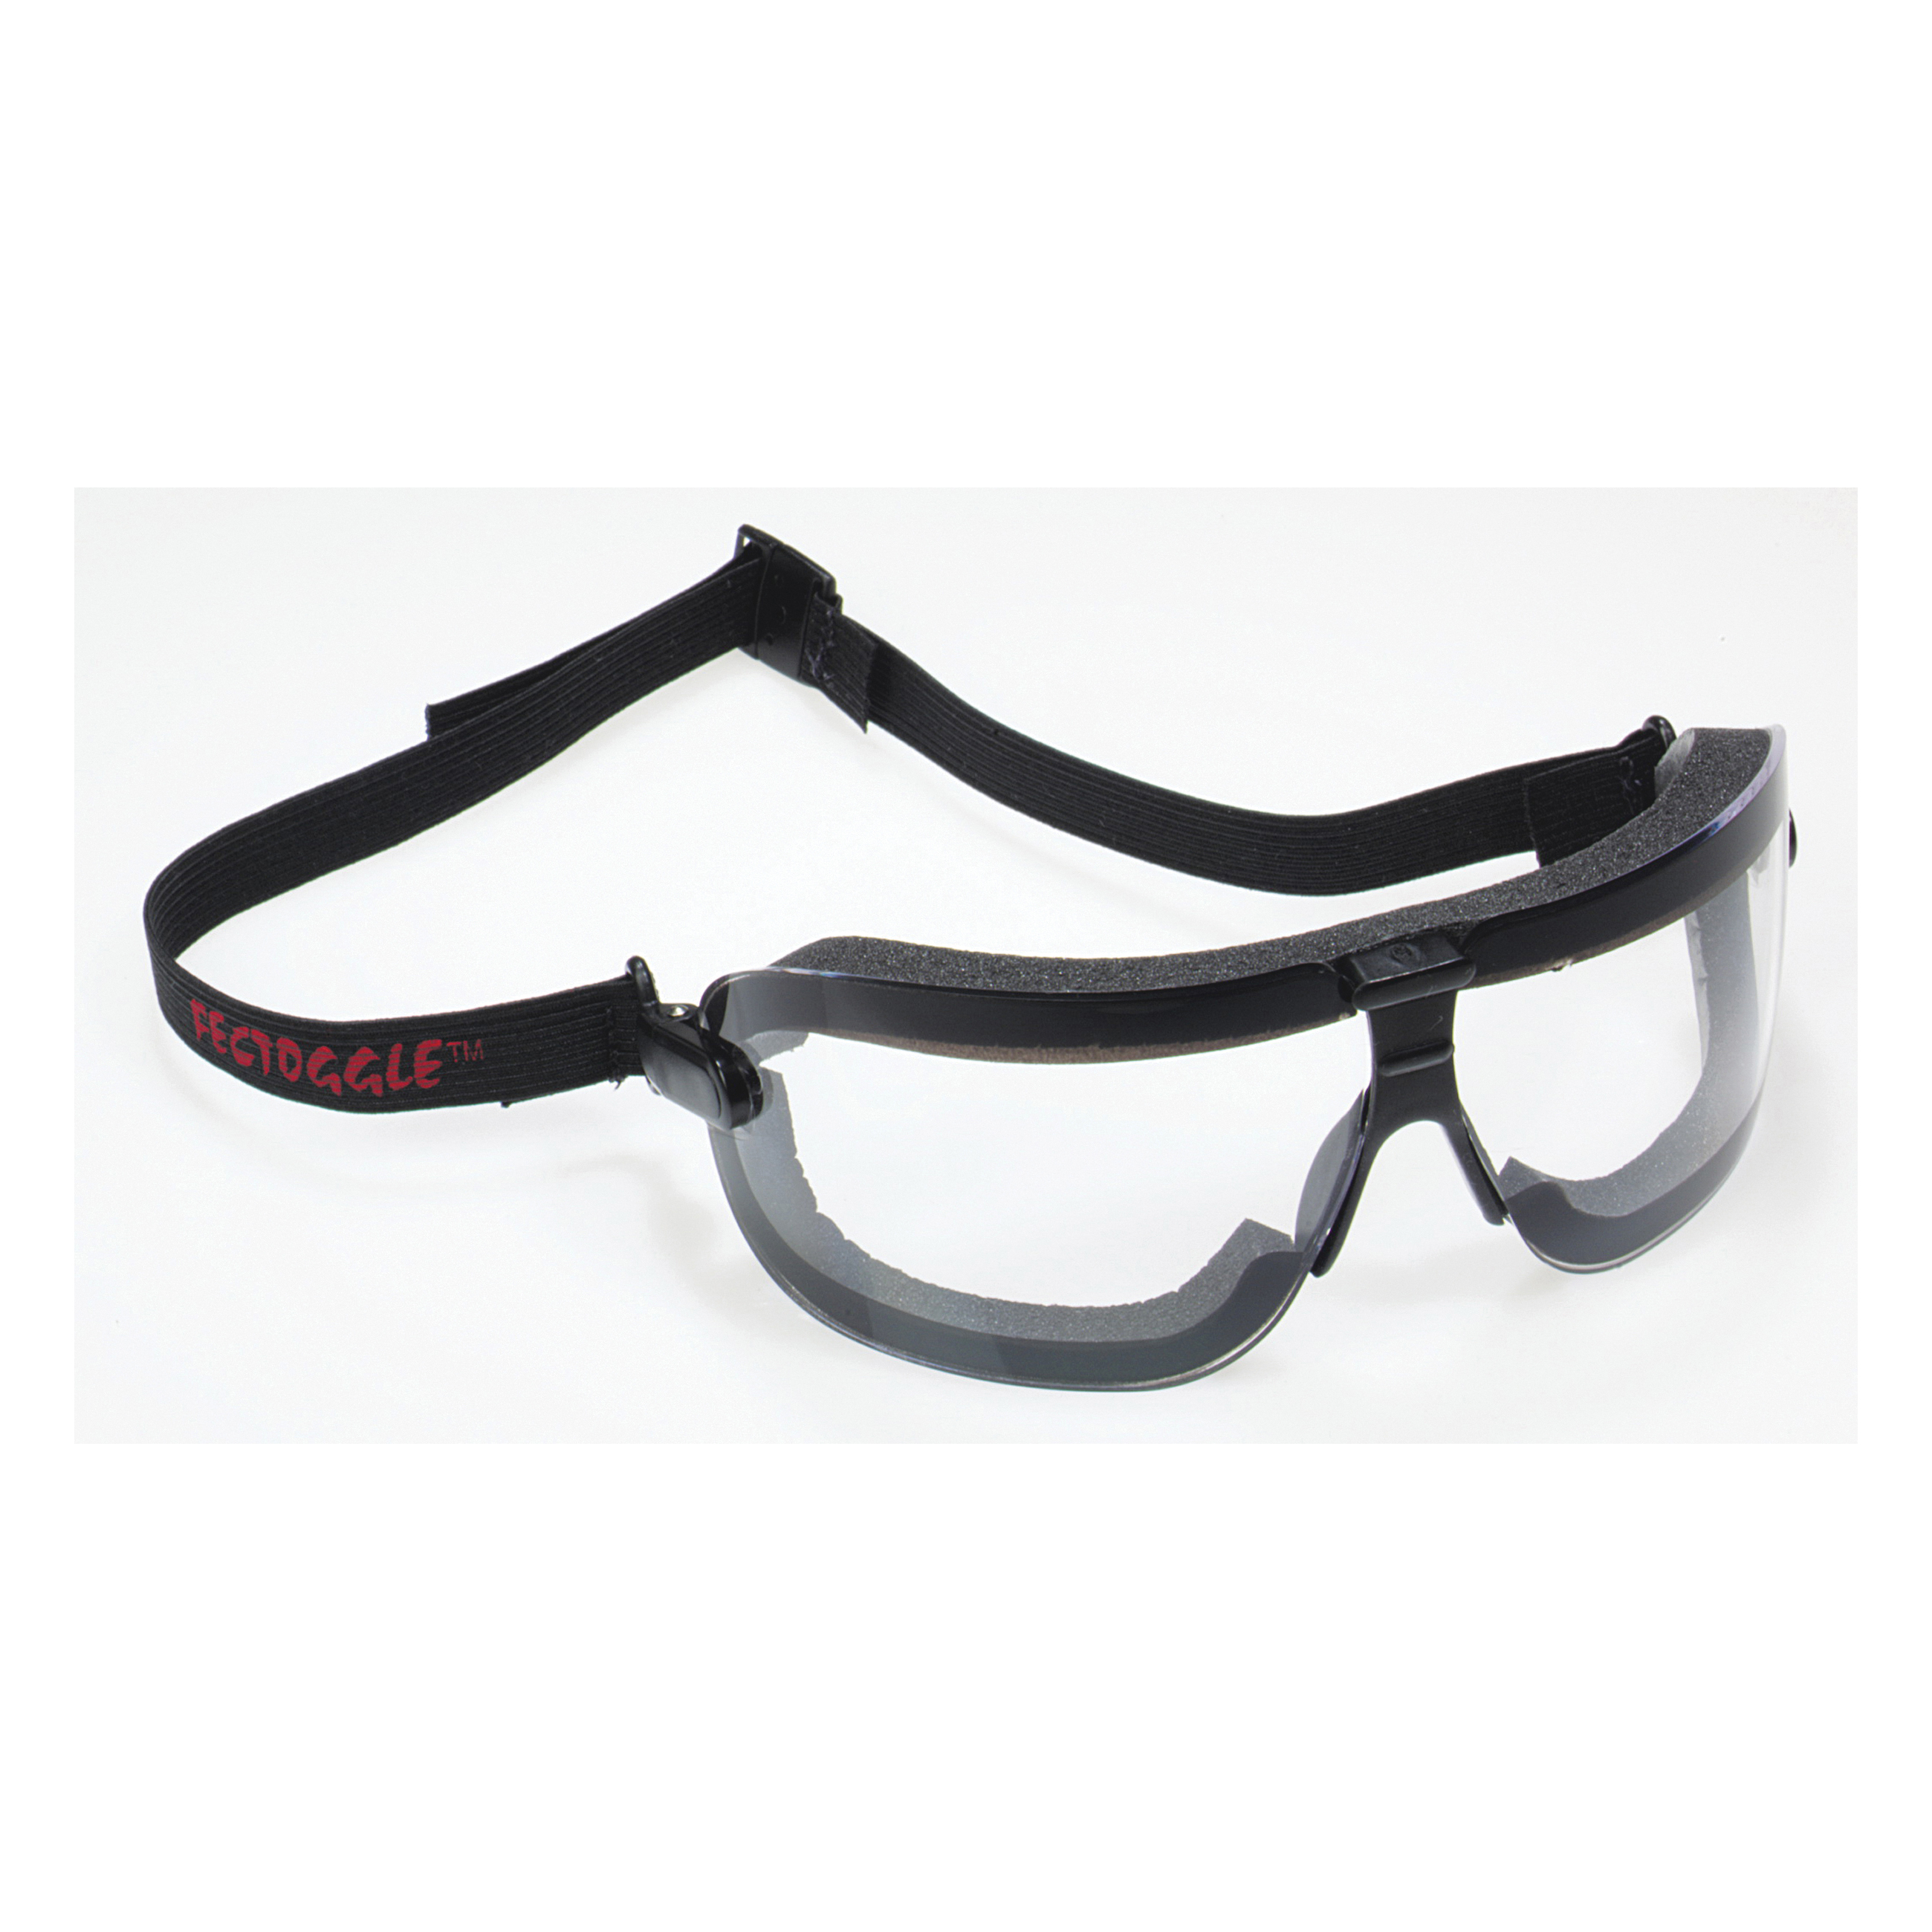 3M™ Maxim™ 2x2 078371-62169 40696-00000-10 Premium Side Venting Safety Goggles With Black Frame and Elastic Strap, Anti-Fog Clear Polycarbonate Lens, 99.9% % UV Protection, Elastic Strap, ANSI Z87.1-2015